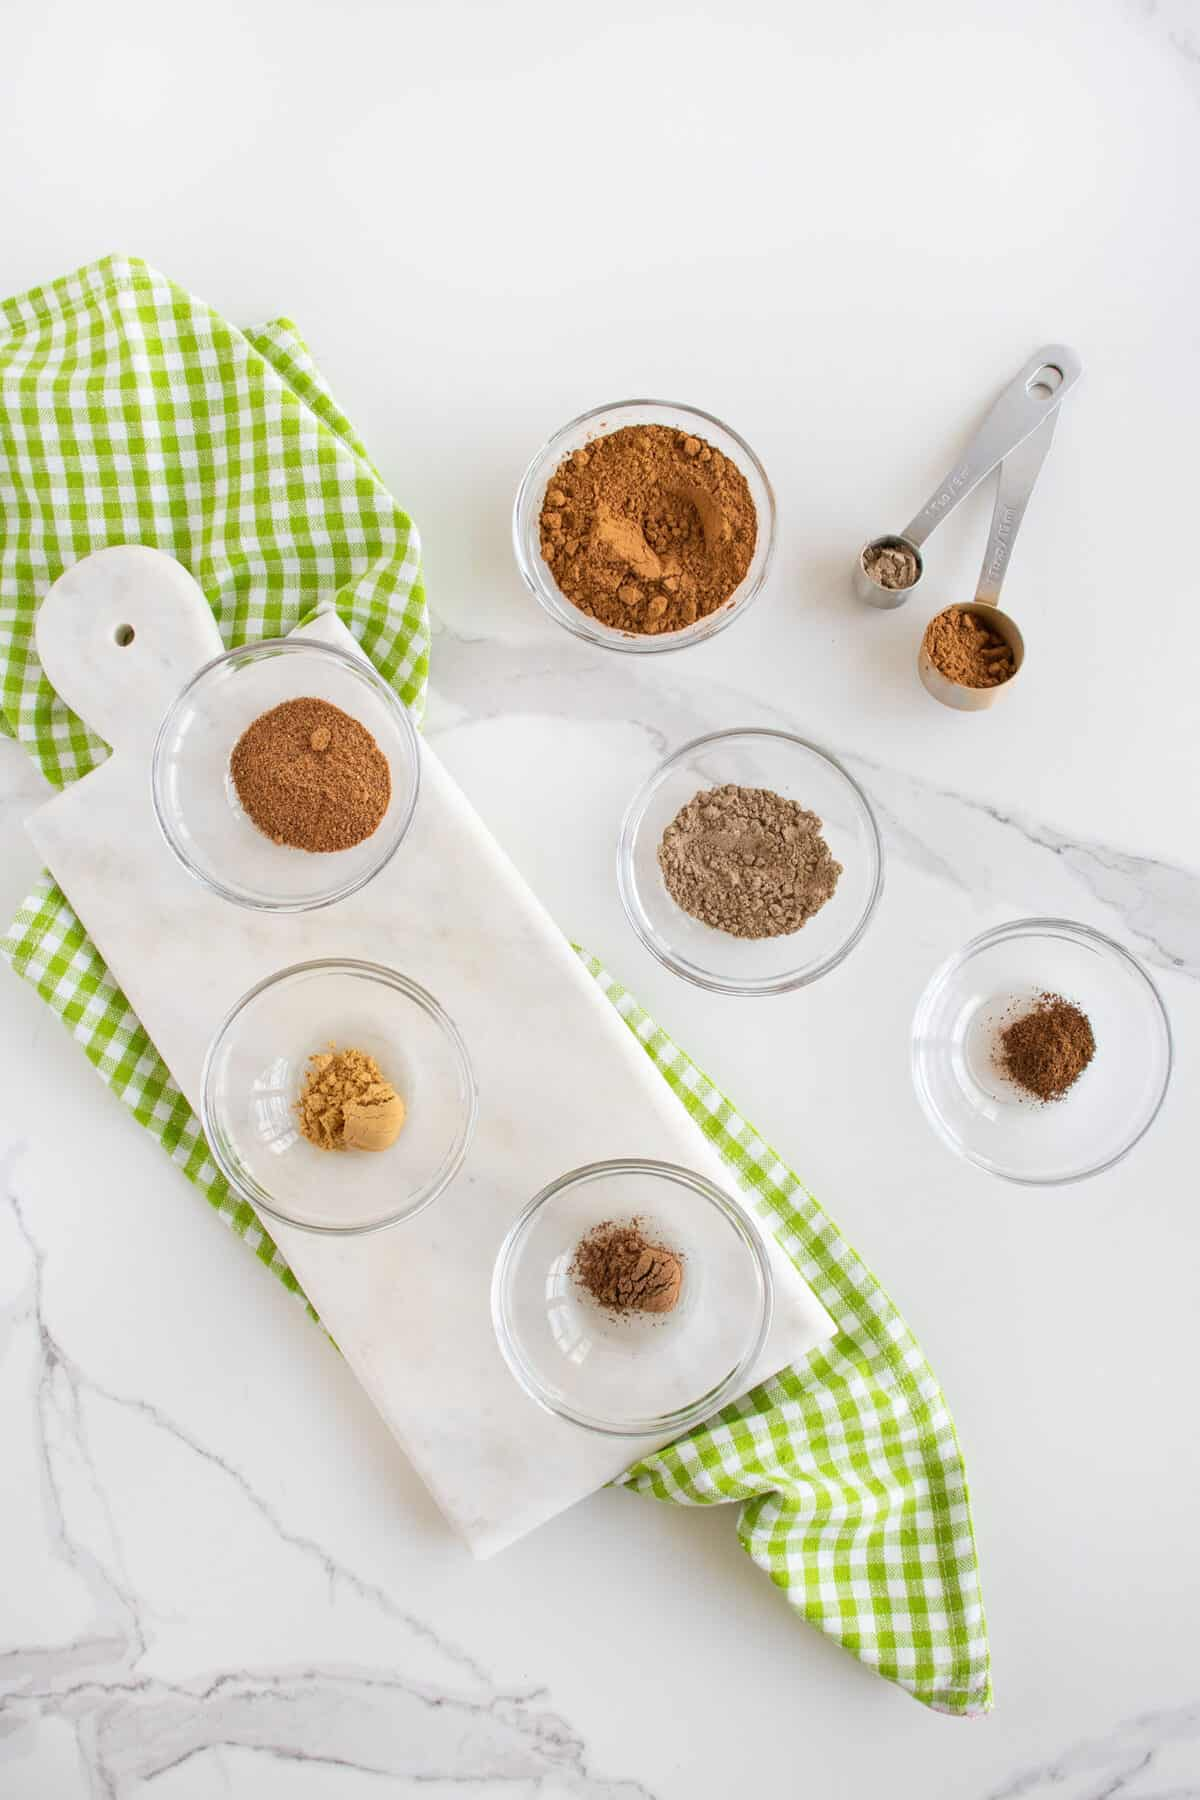 ingredients for apple spice mix